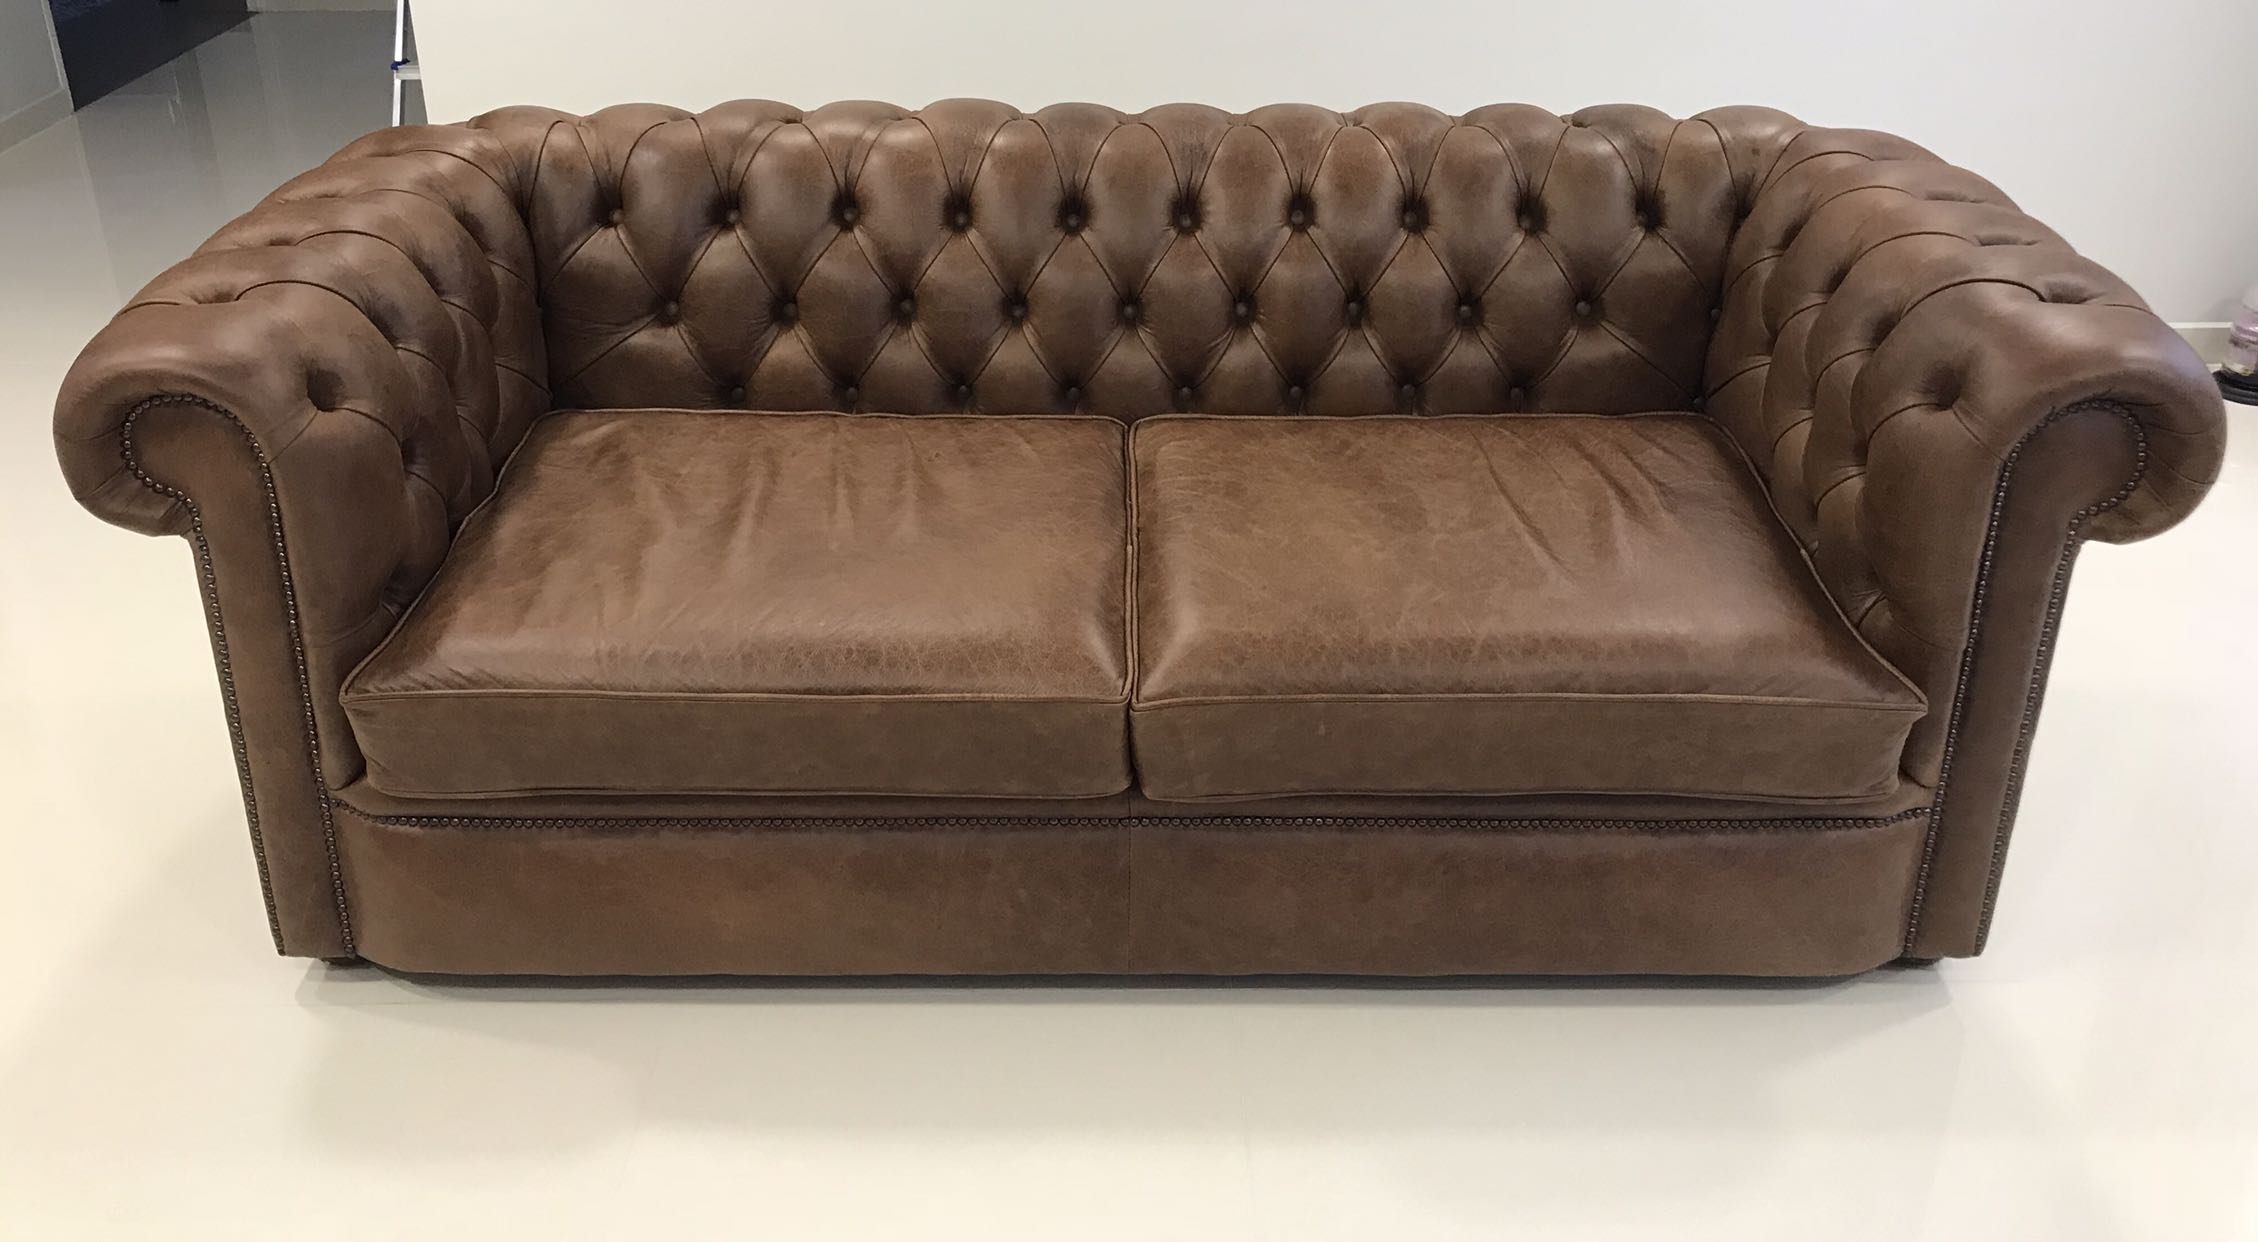 Vintage Leather Chesterfield Sofas Set Of 2